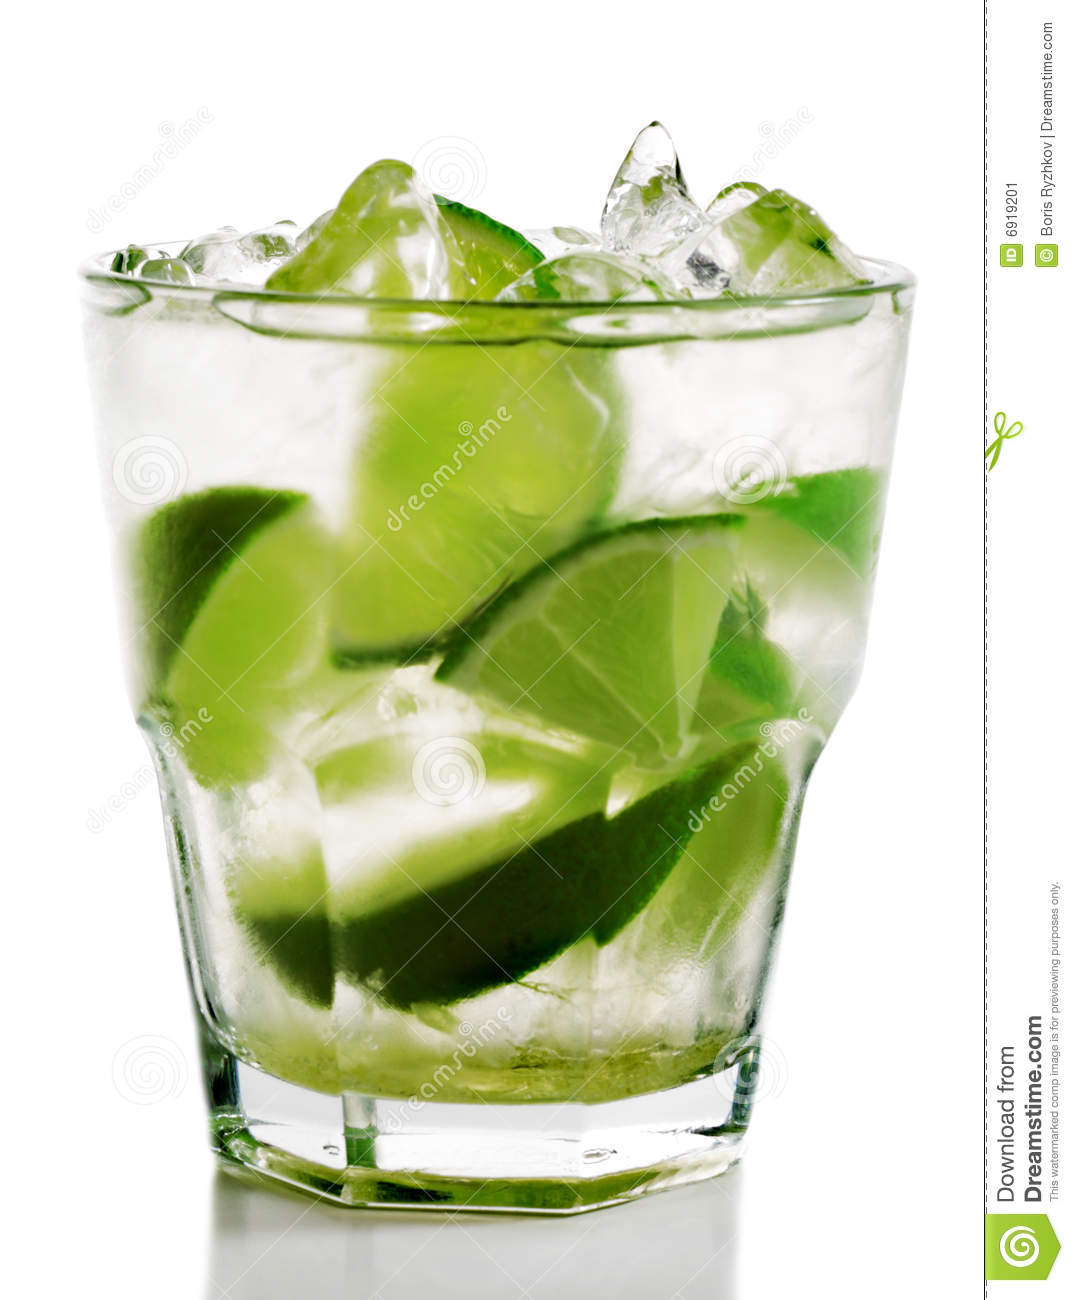 Caipirinha cocktail  Cocktail - Caipirinha Stockbild - Bild: 6919201